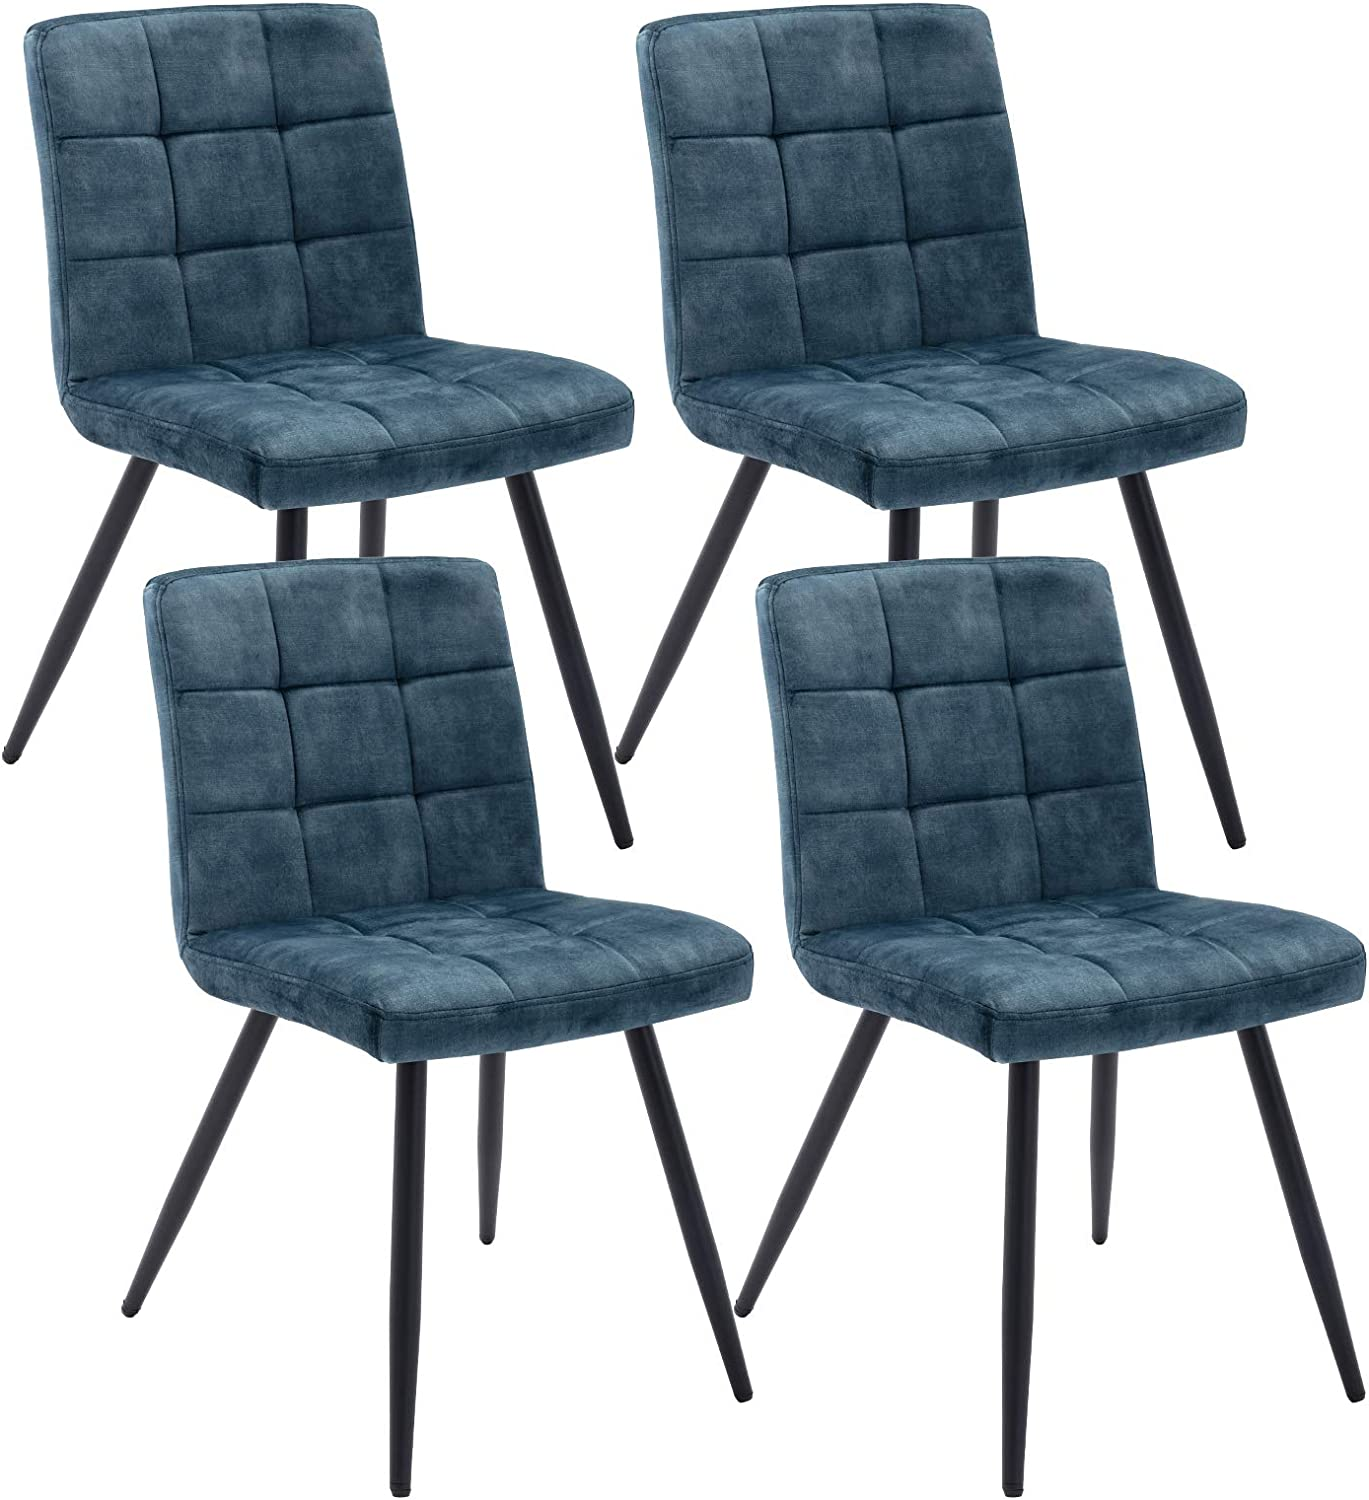 Duhome Minneapolis Mall Dining famous Chairs Reception Room Living Accent